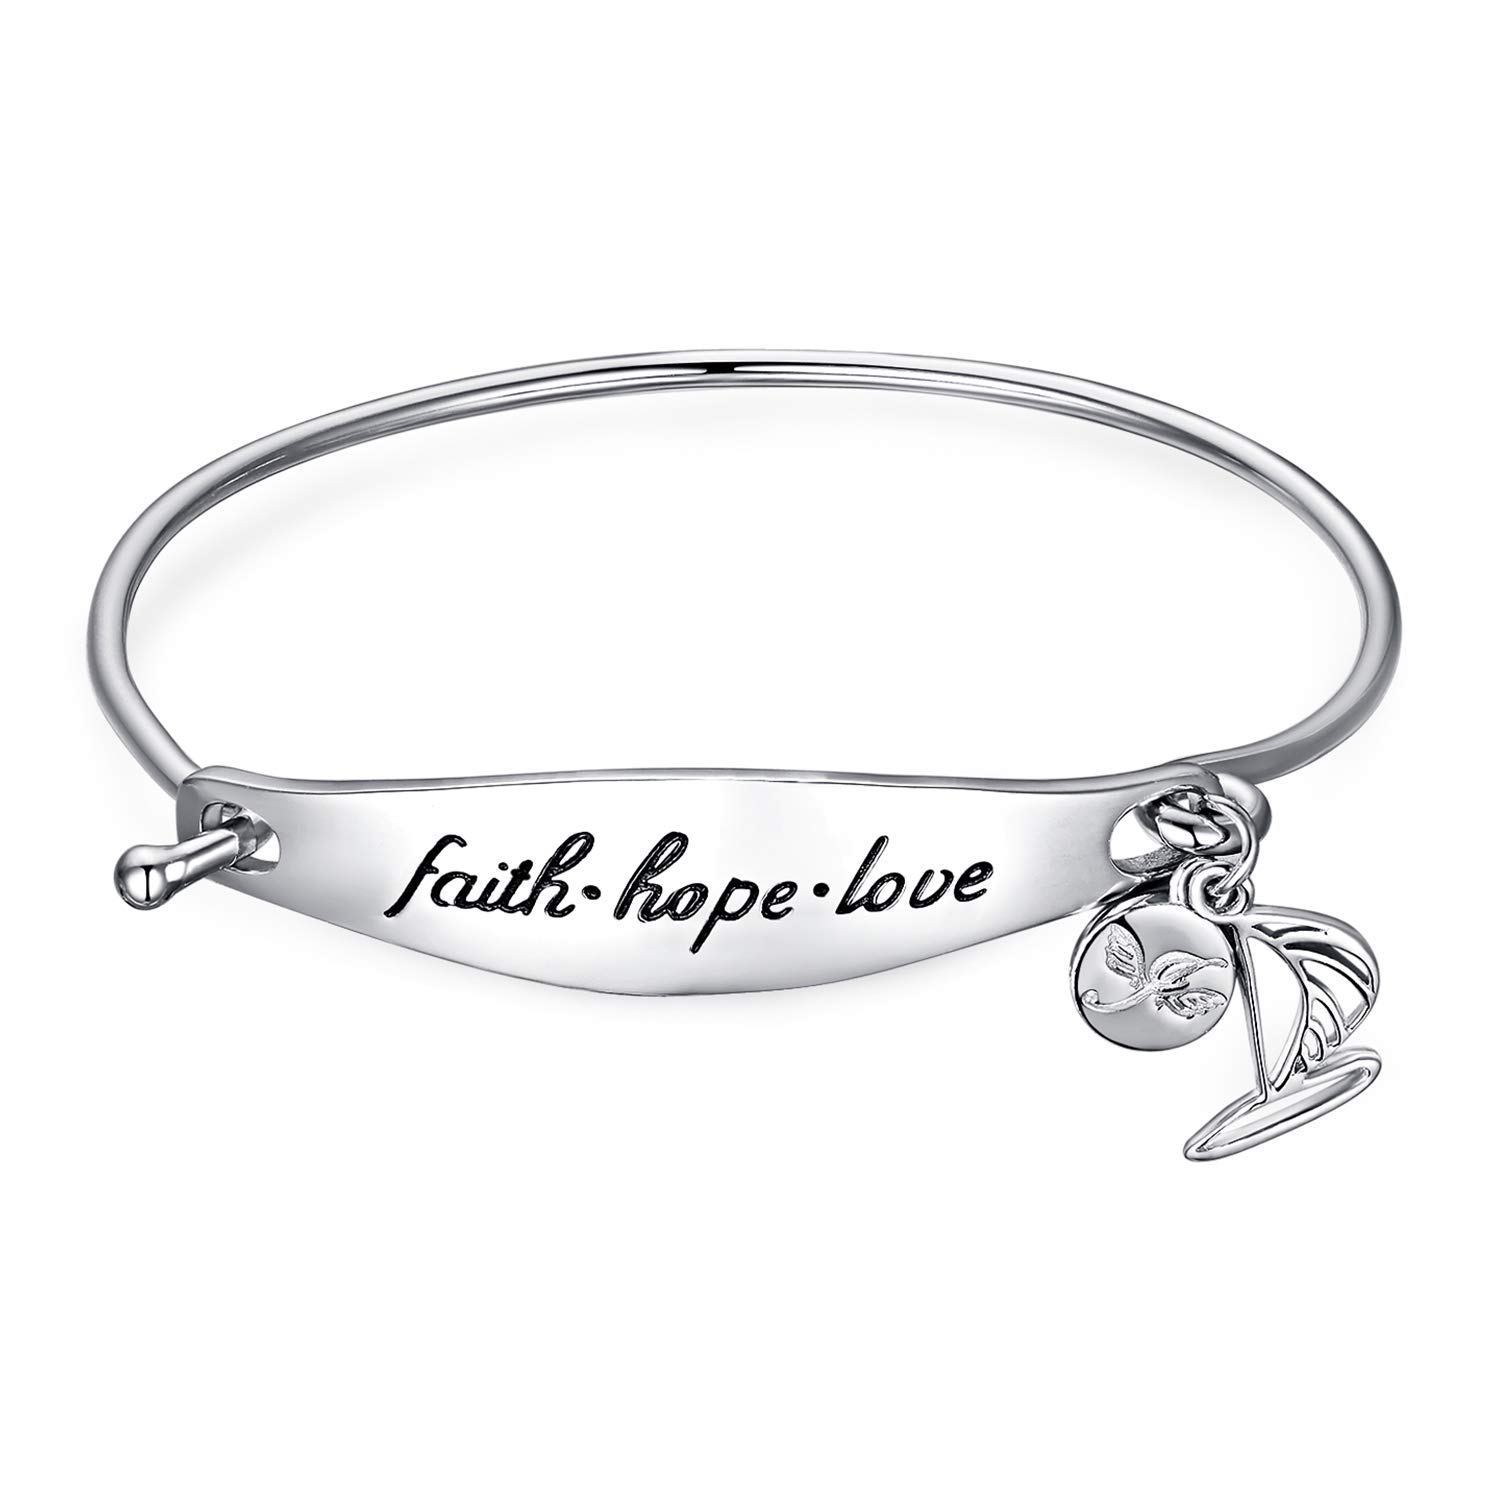 36ff3765d013 Amazon.com  JewelryPalace Personalized Hand Stamped Faith Hope Love Dangle  Sailboat 925 Sterling Silver Bangle Bracelet  Jewelry